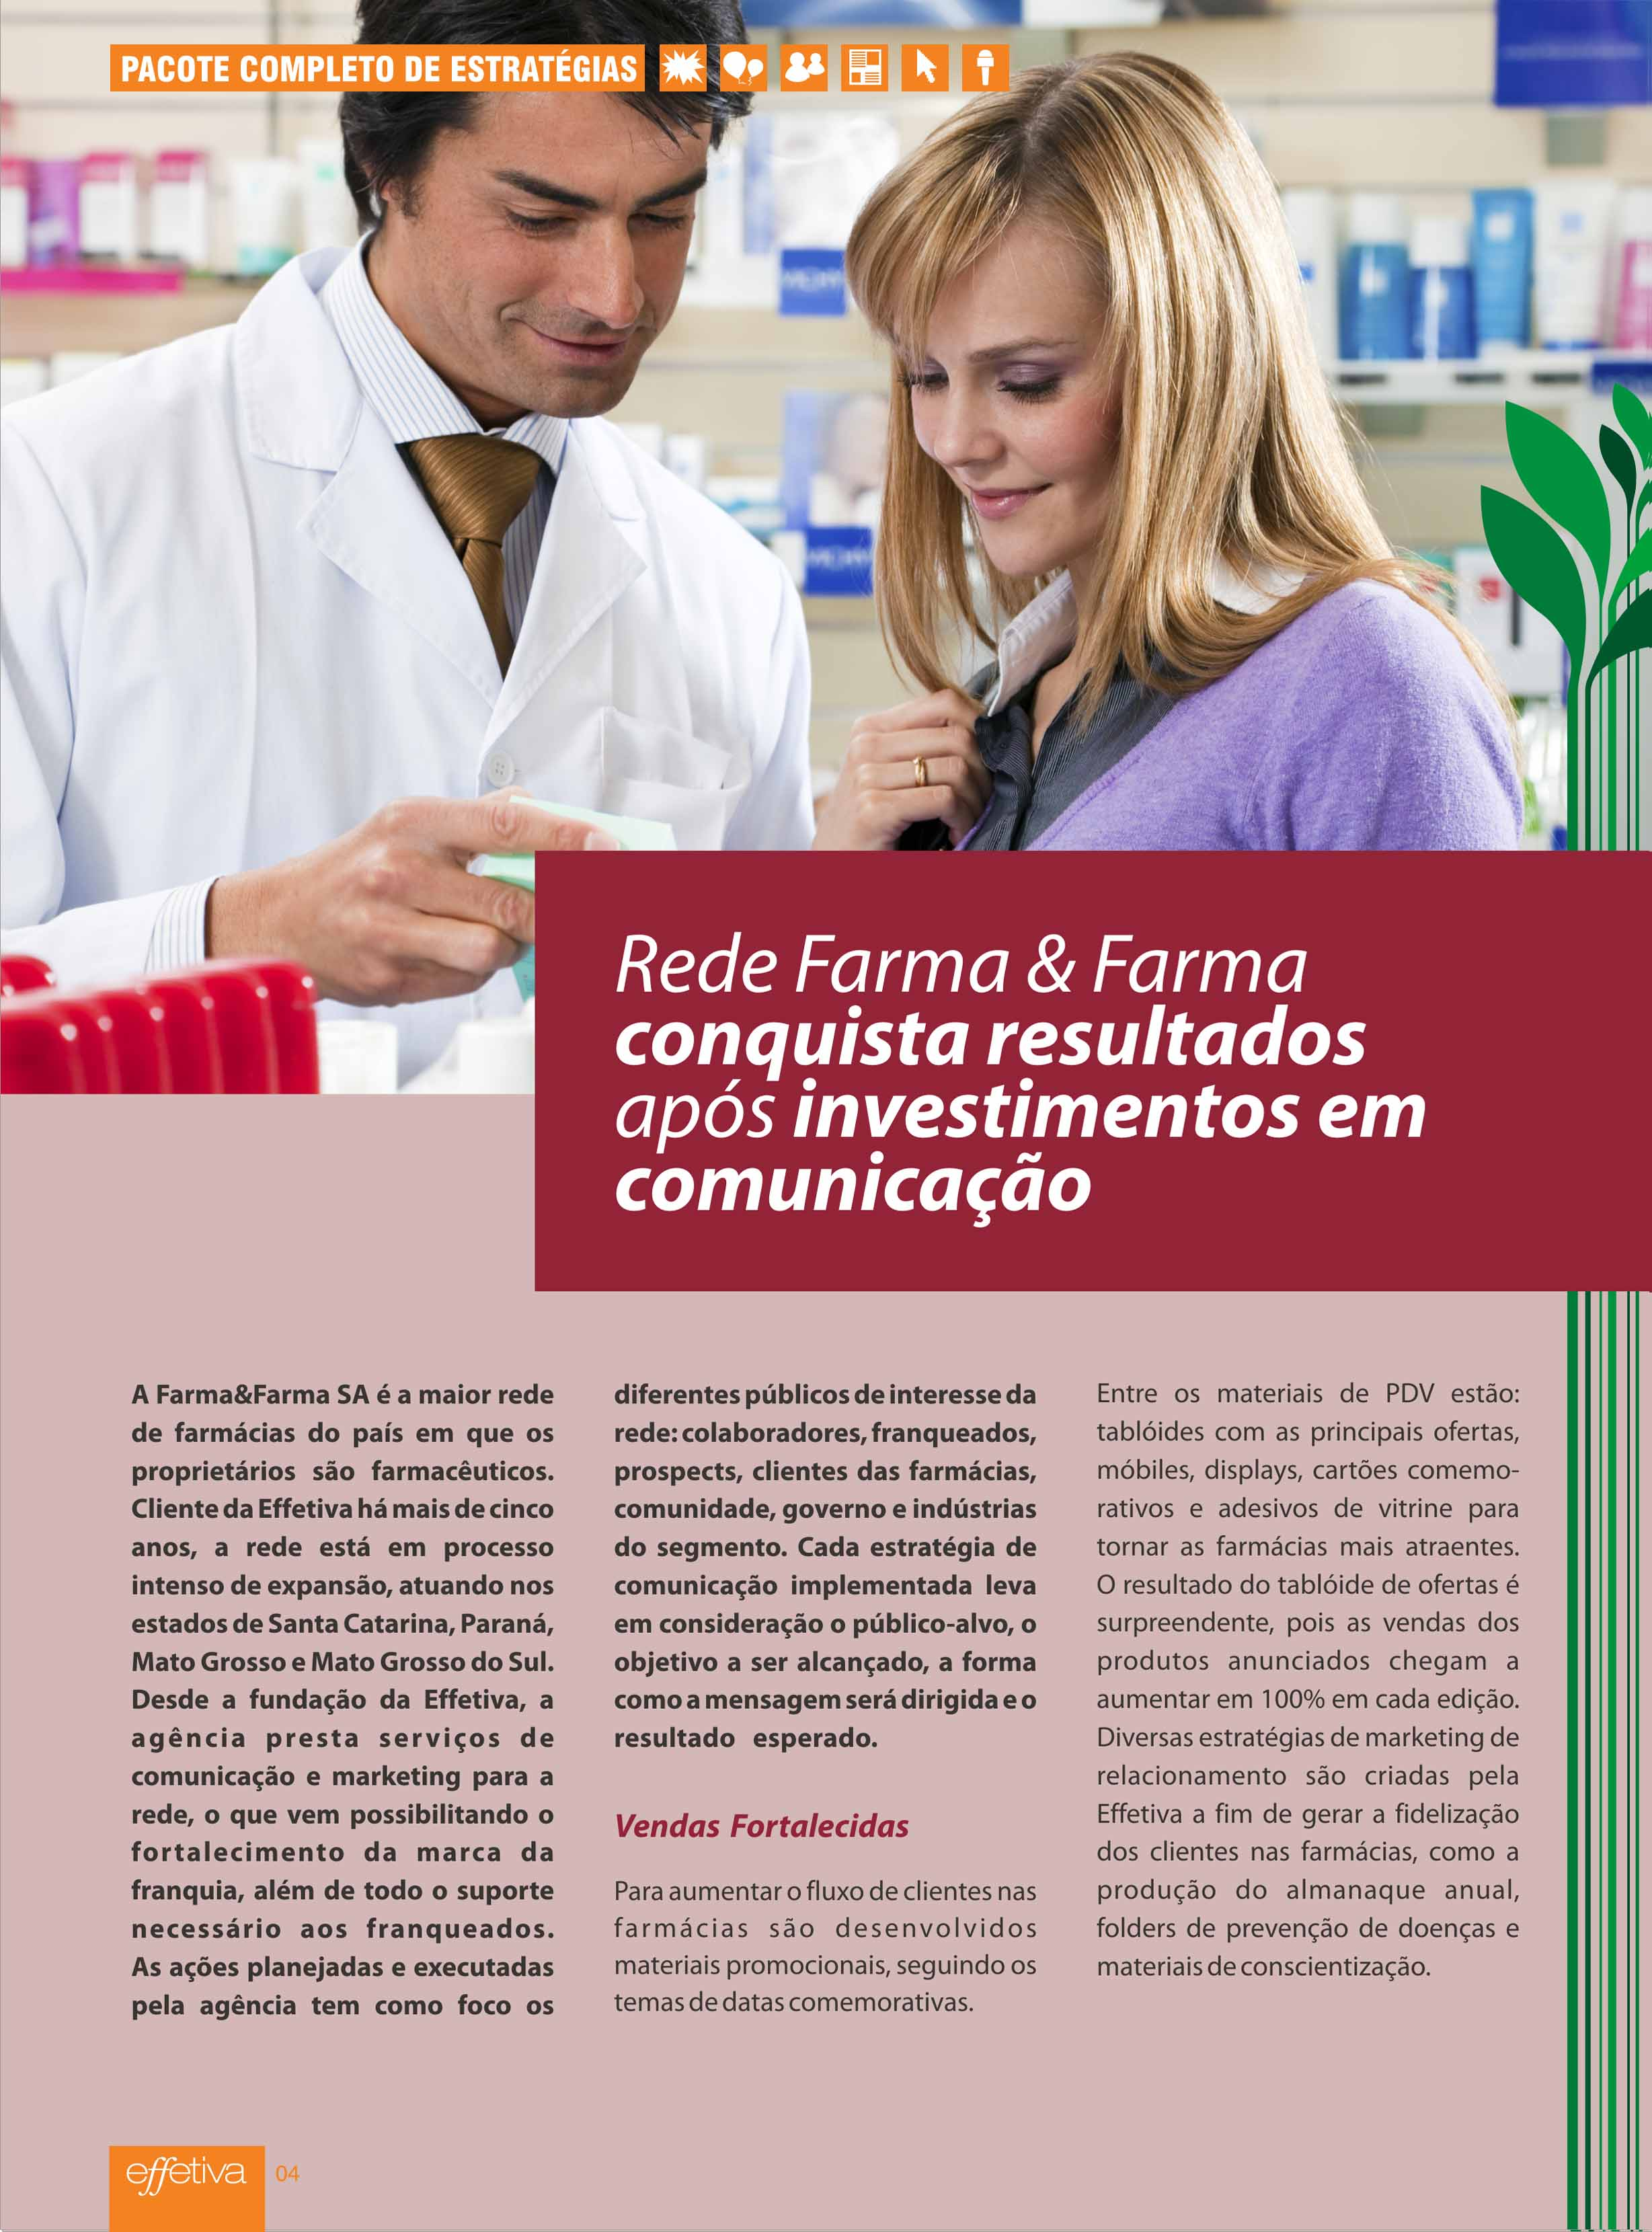 Effetiva_-_Revista_-_Página_04_-_Case_Farma